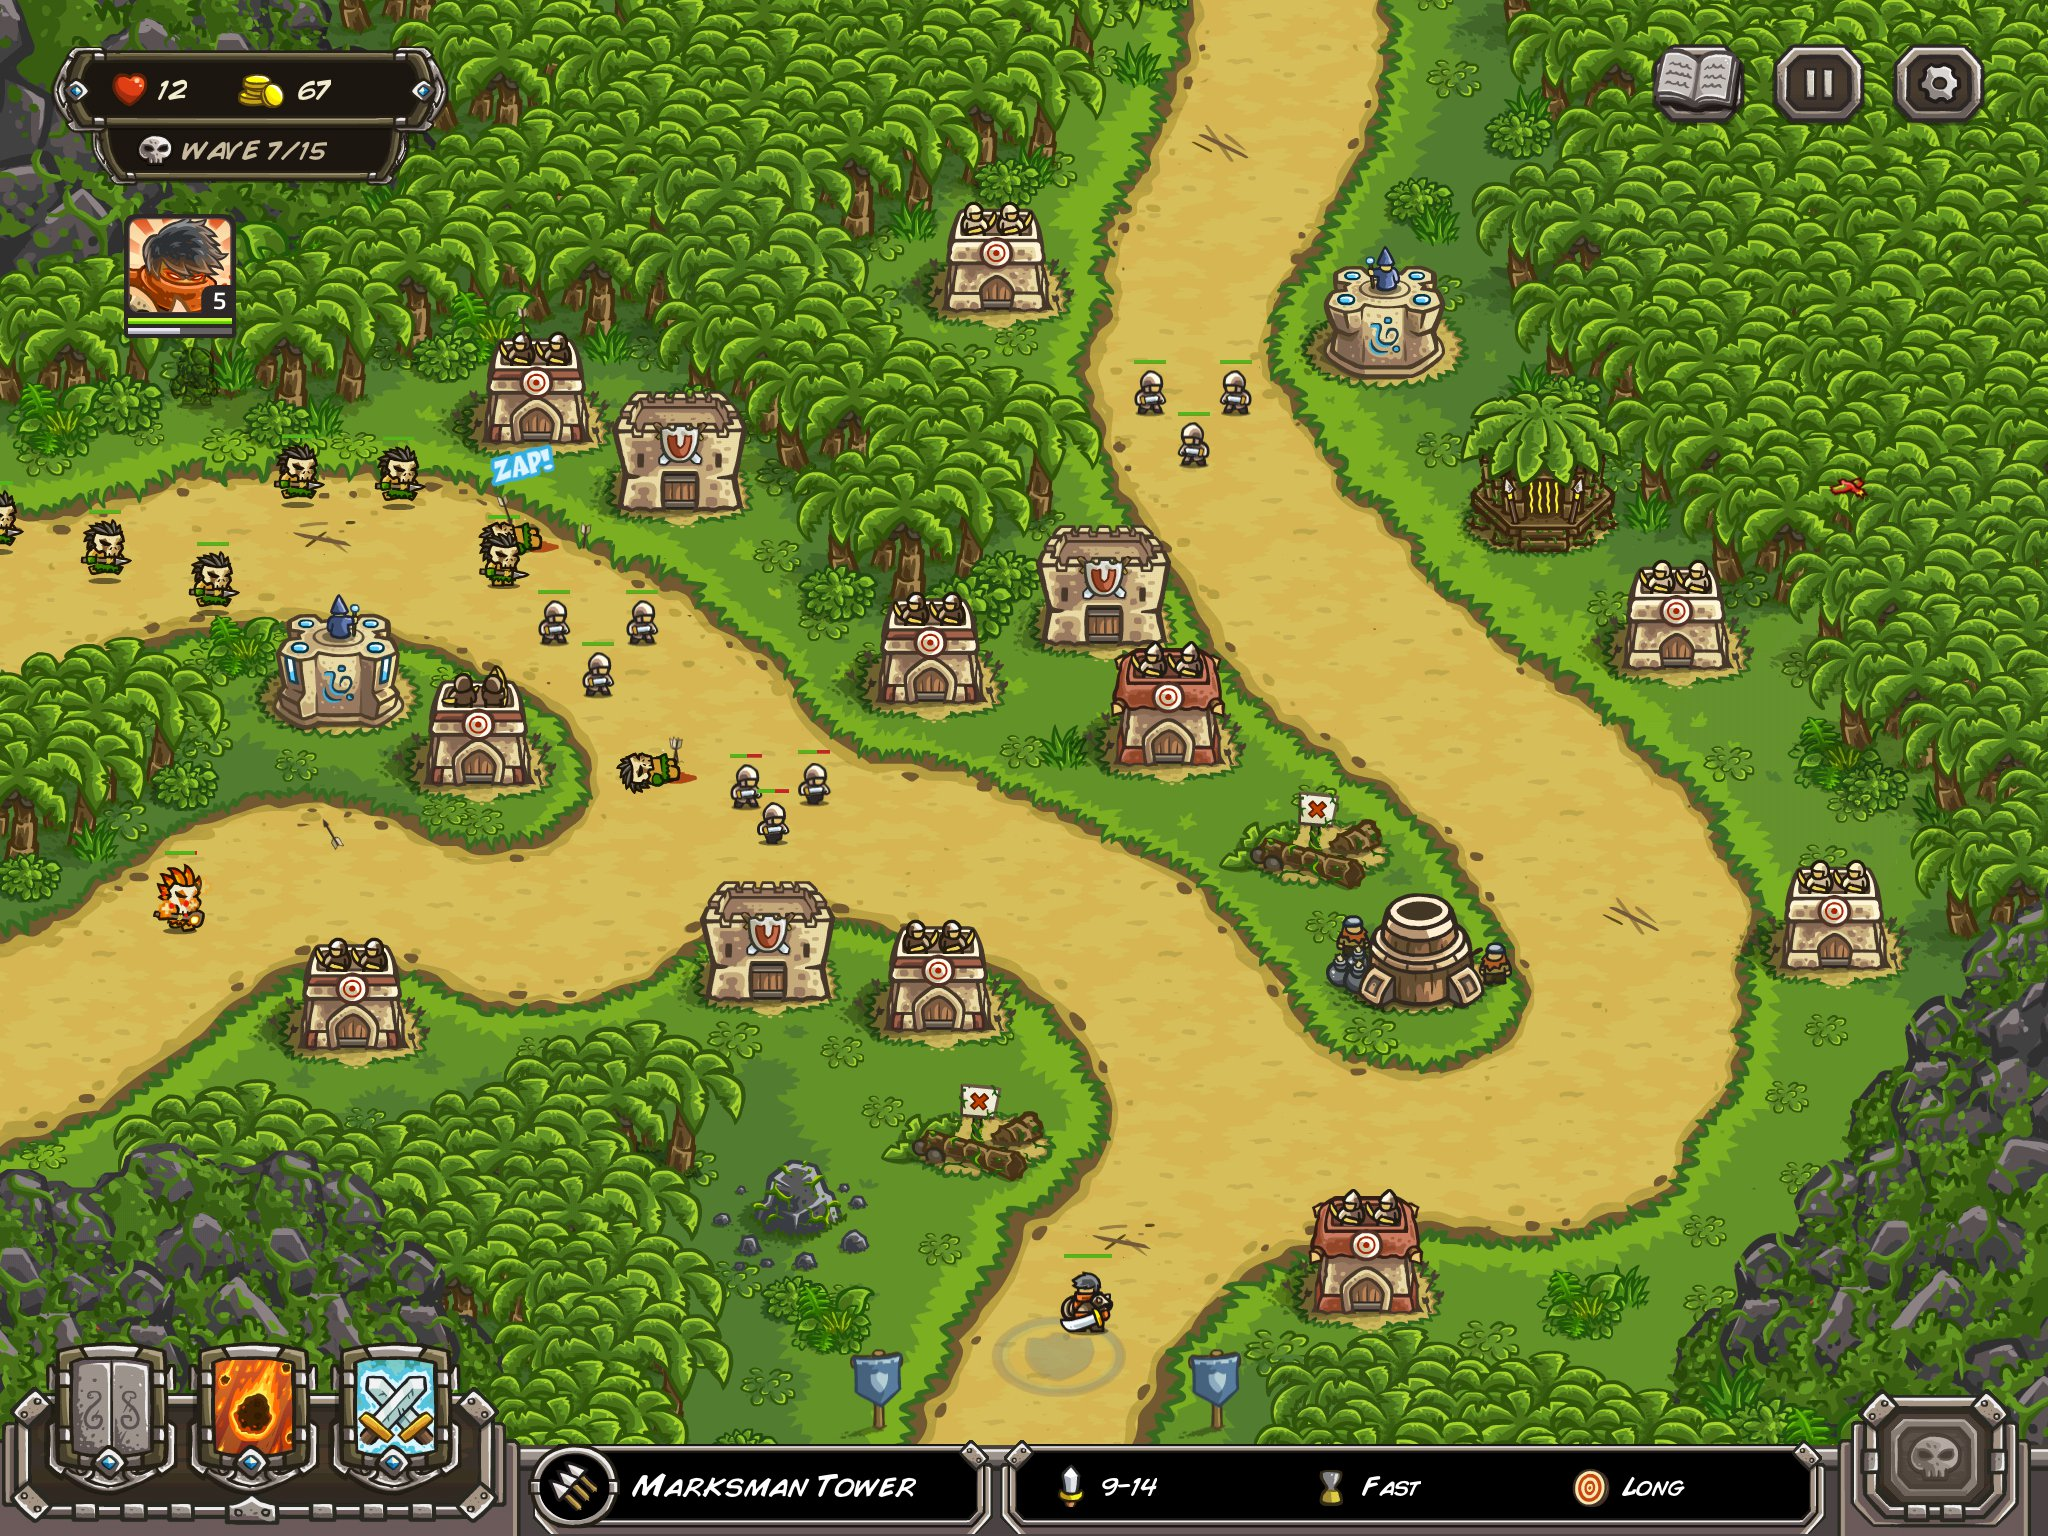 Tower defence classics Kingdom Rush and Kingdom Rush: Frontiers are dirt cheap on iPad and iPhone right now